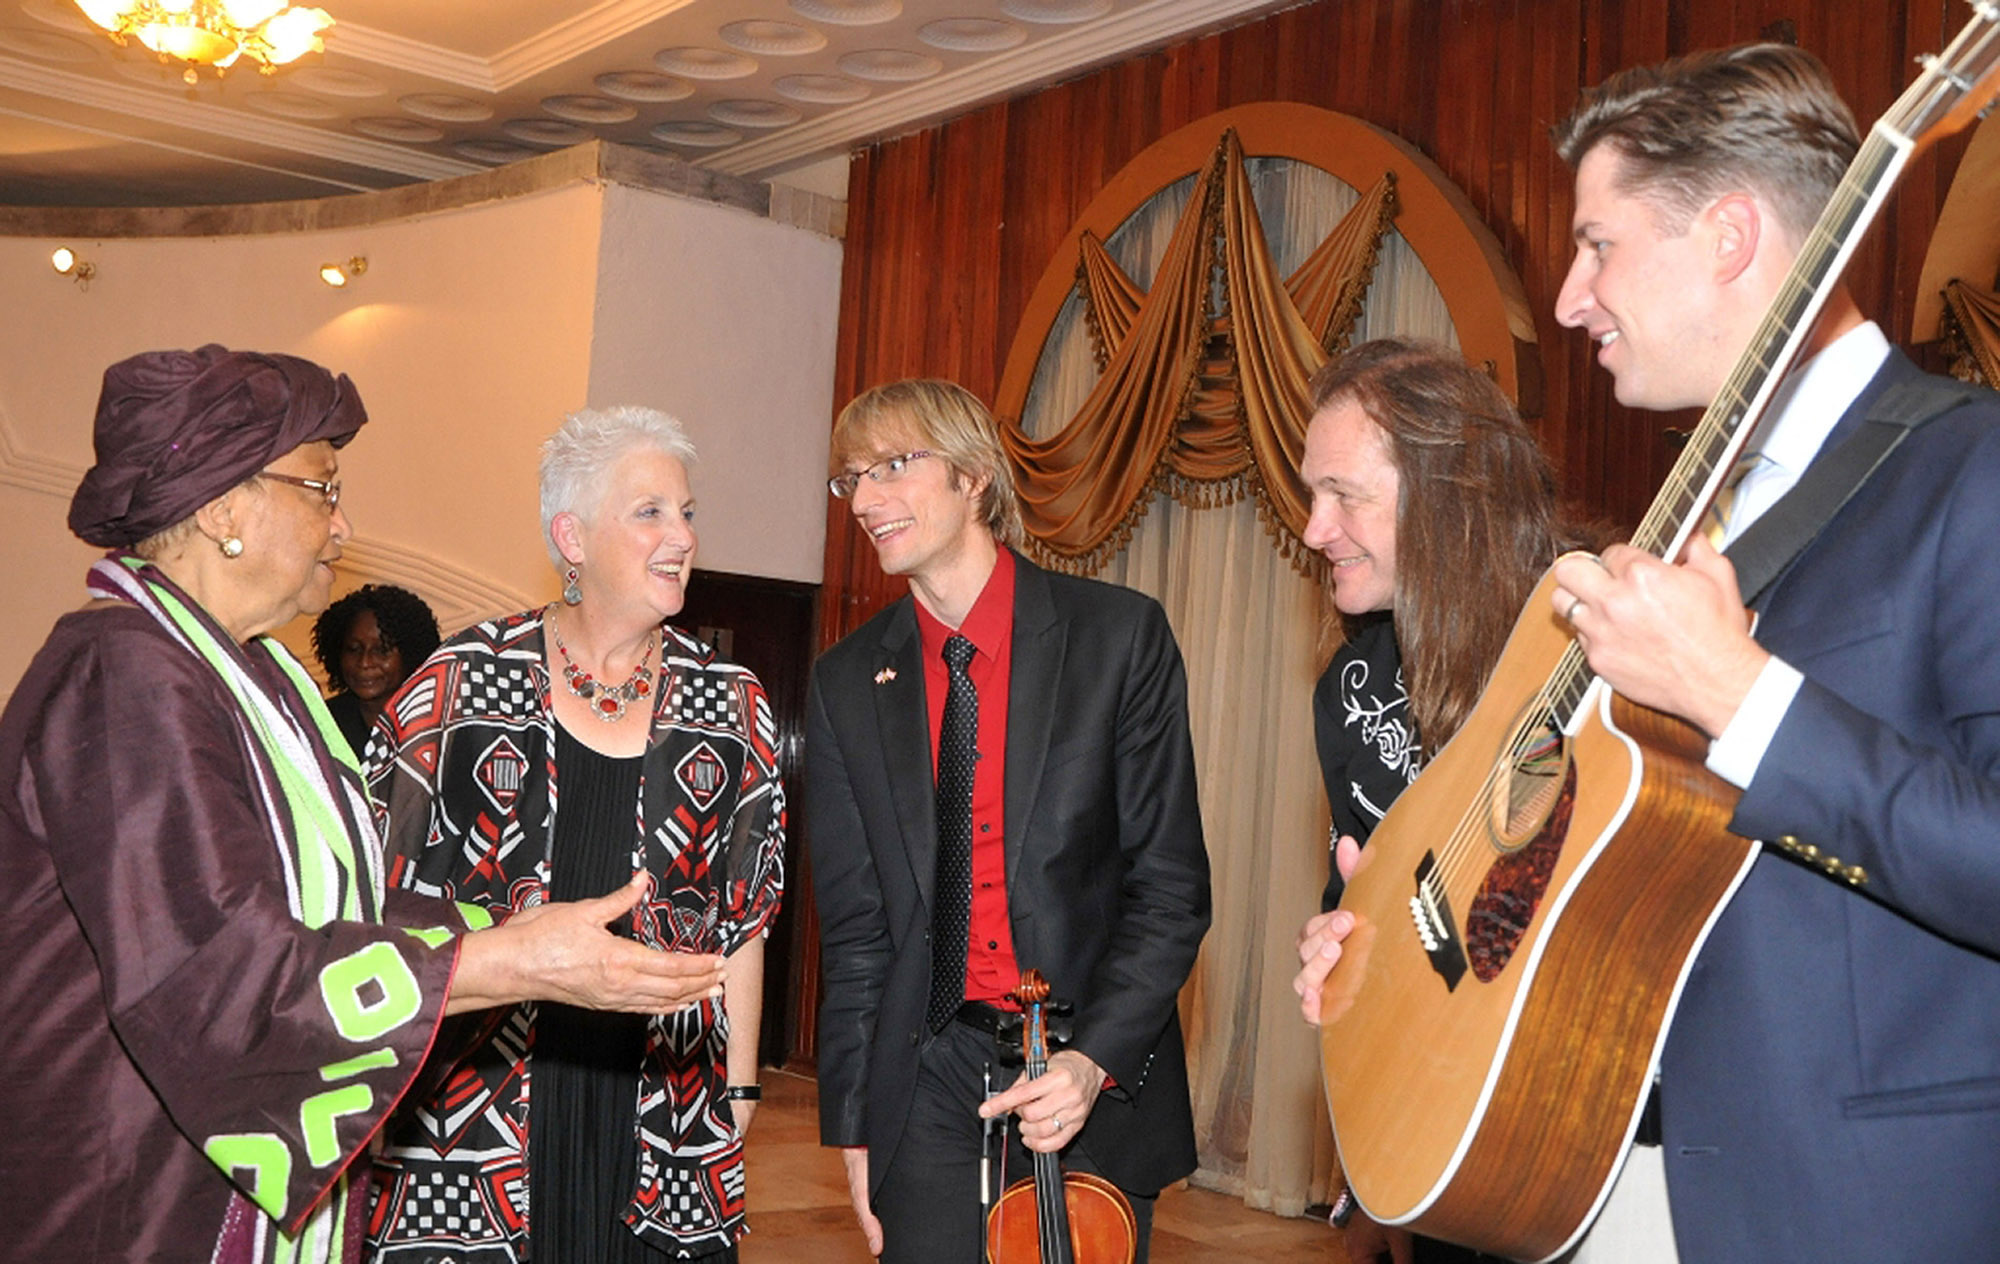 President of Liberia Ellen Johnson Sirleaf (far left) and U.S. Ambassador to Liberia Deborah Malac (second from left) with Kyle Dillingham (third from left), Brent Saulsbury (fourth from the left) and 2014 Oklahoma's Teacher of the Year, Peter Markes (far right), greet one another during Horseshoe Road's recent American Music Abroad tour of Liberia. Members of the band will perform and highlight the tour at the UCO International House Sept. 4.